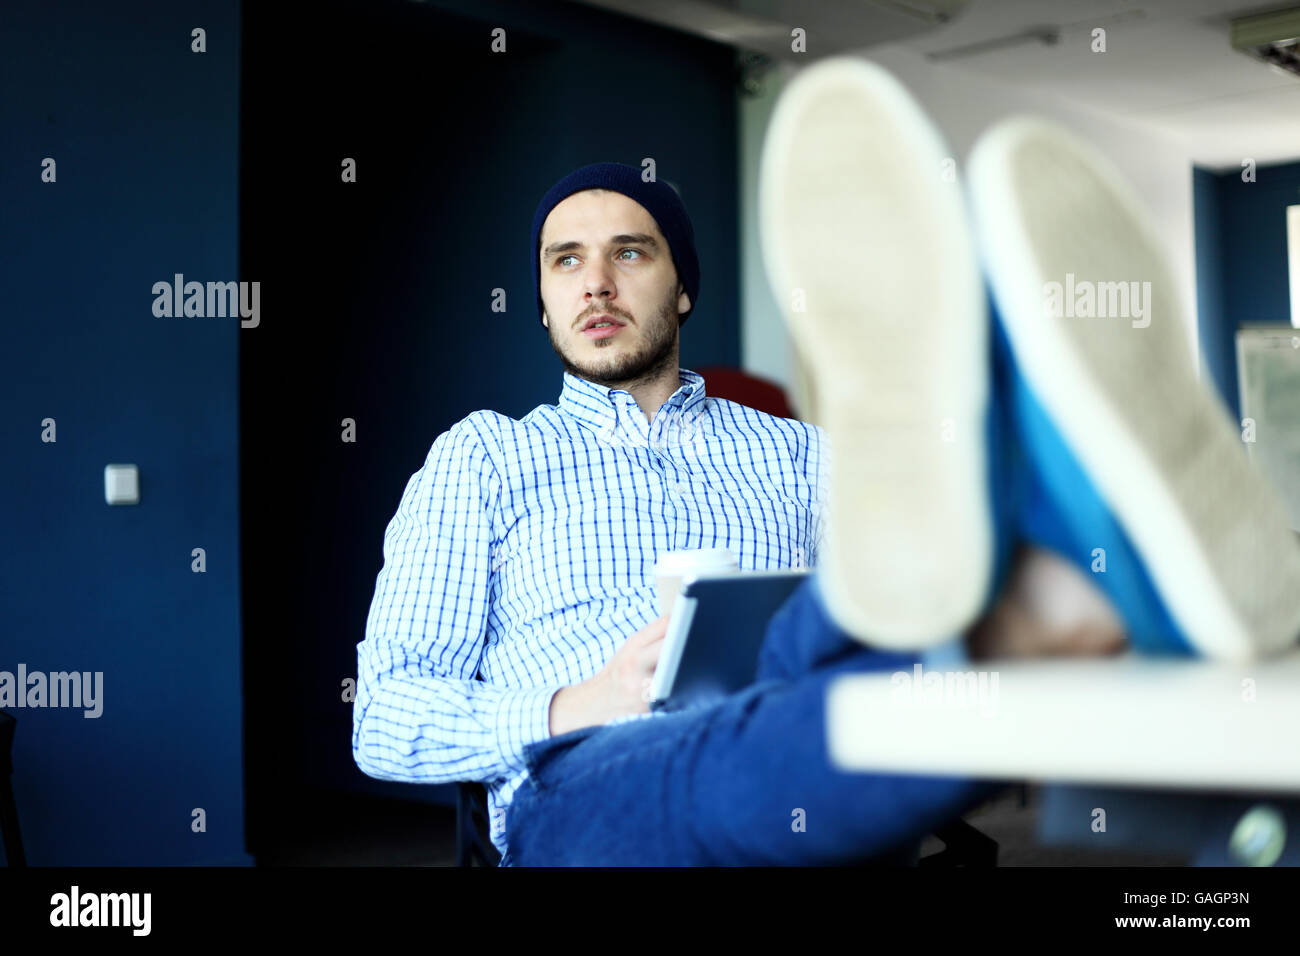 Handsome man working from his home office. Analyze business plans on laptop. Blurred background, film effect - Stock Image